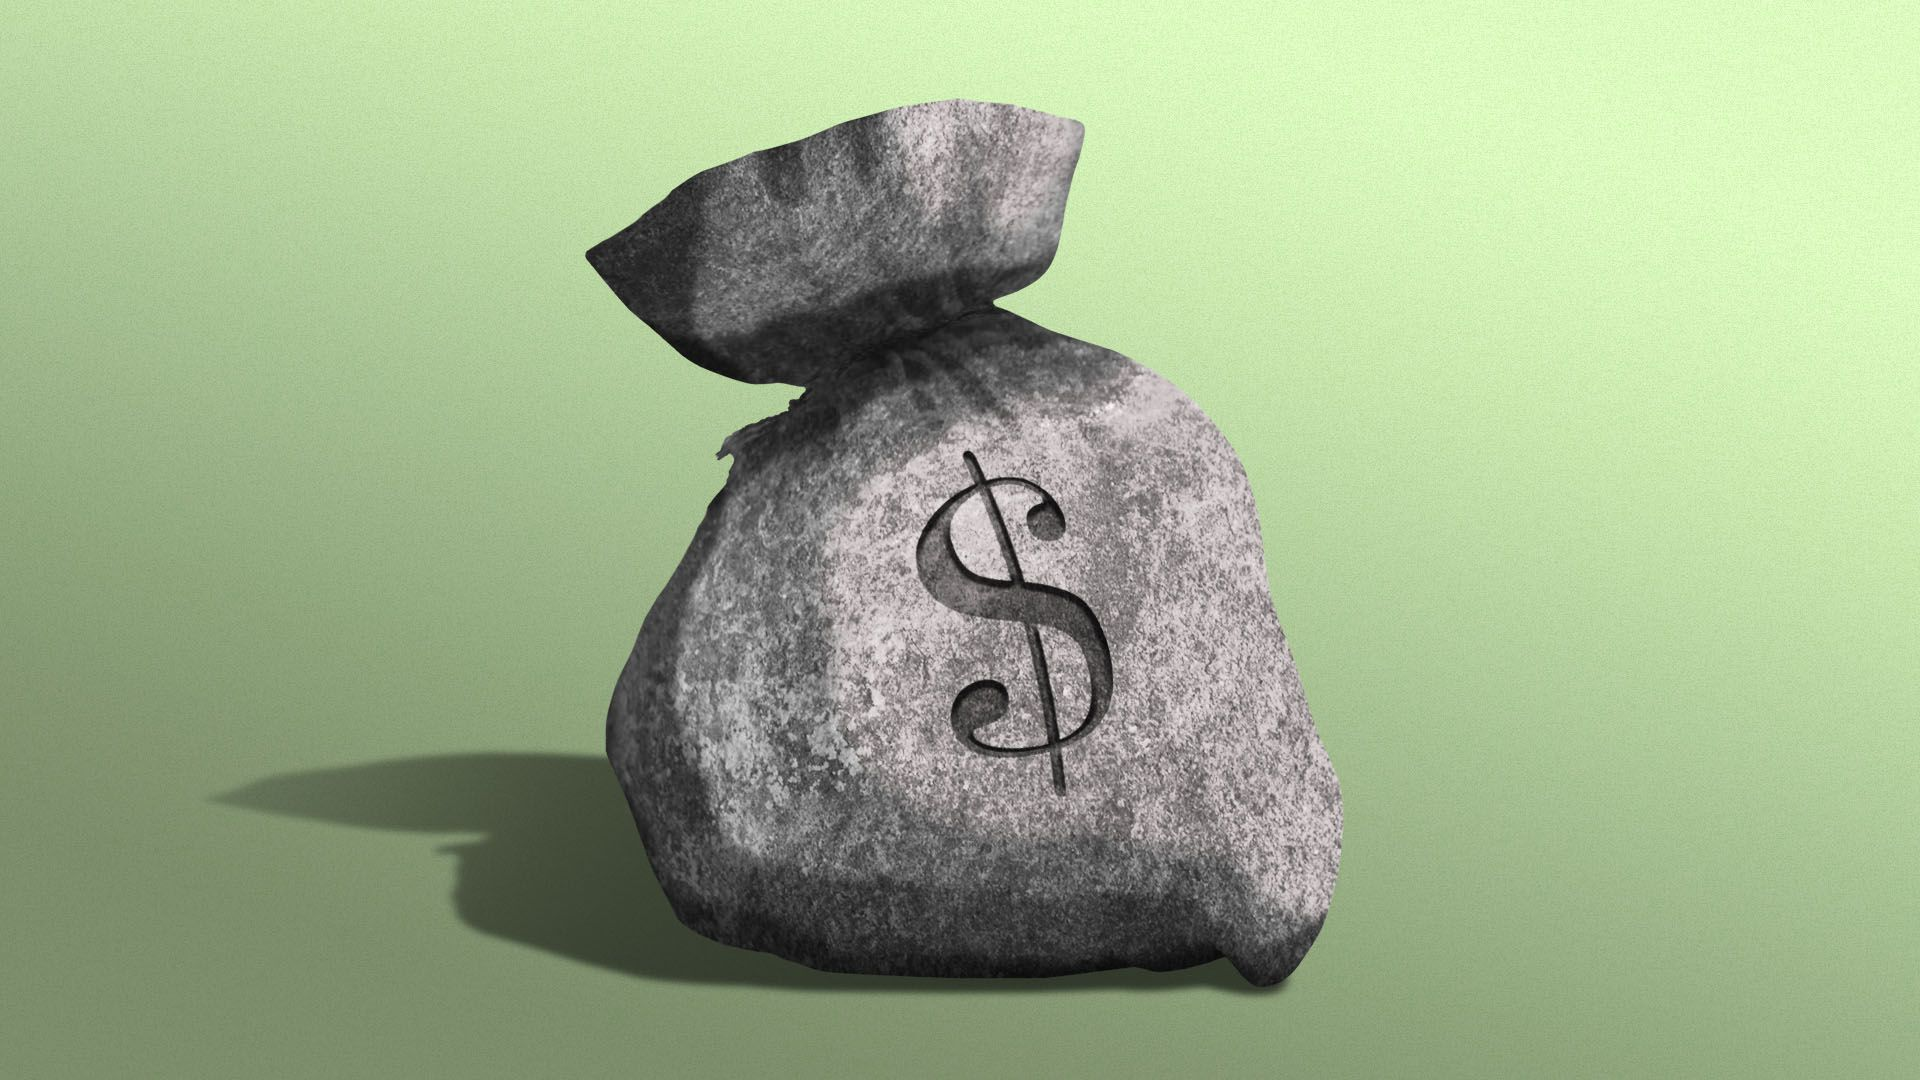 Illustration of a sack of money made out of concrete